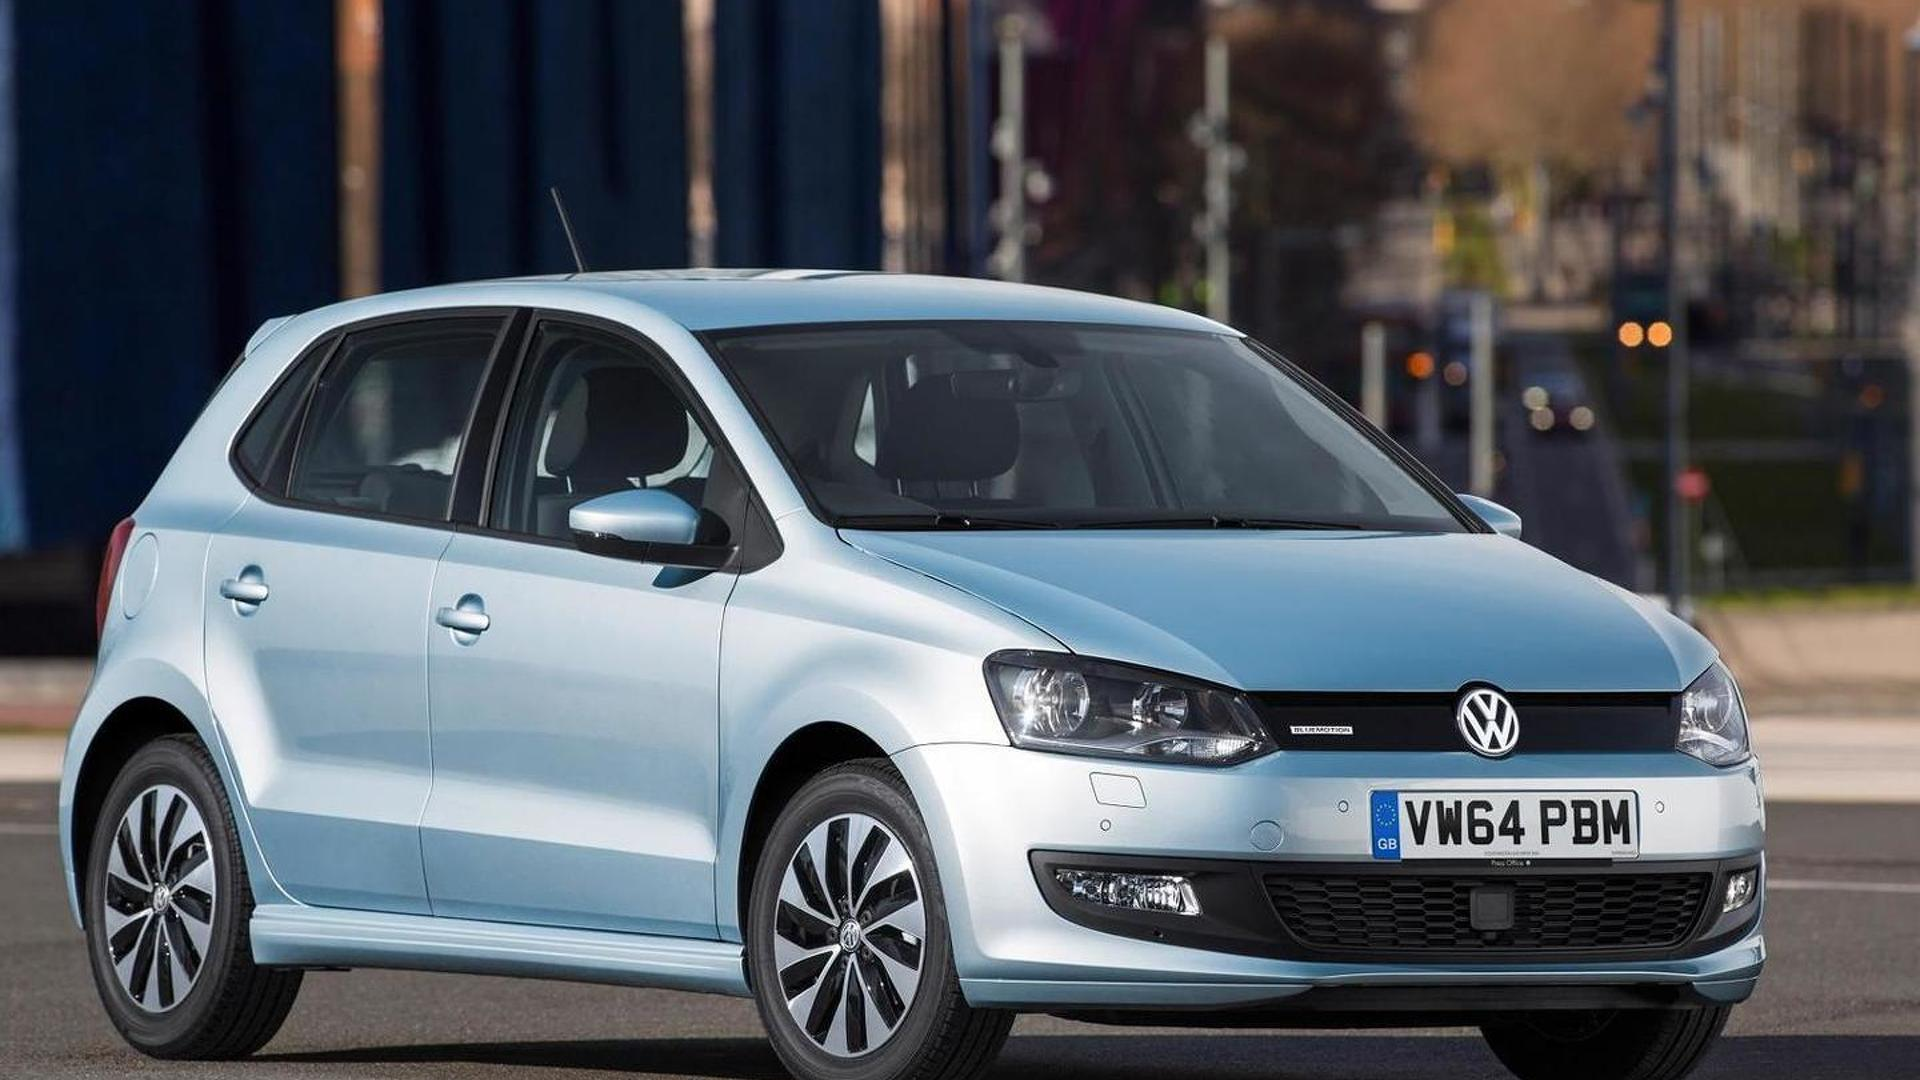 Volkswagen Polo 1.0 TSI BlueMotion priced from £14,730